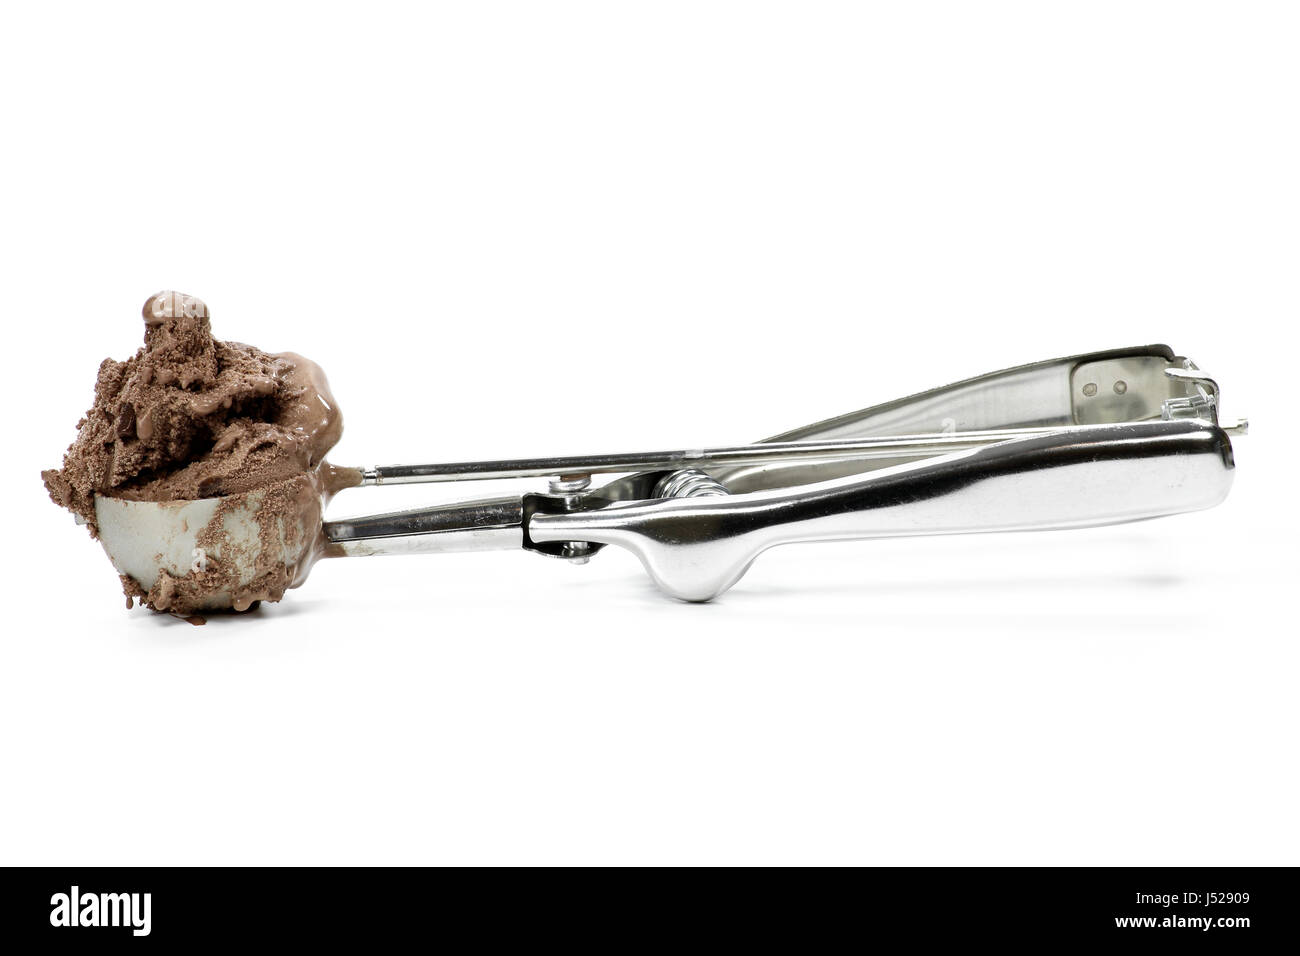 disher scoop with chocolate ice cream isolated on white background Stock Photo